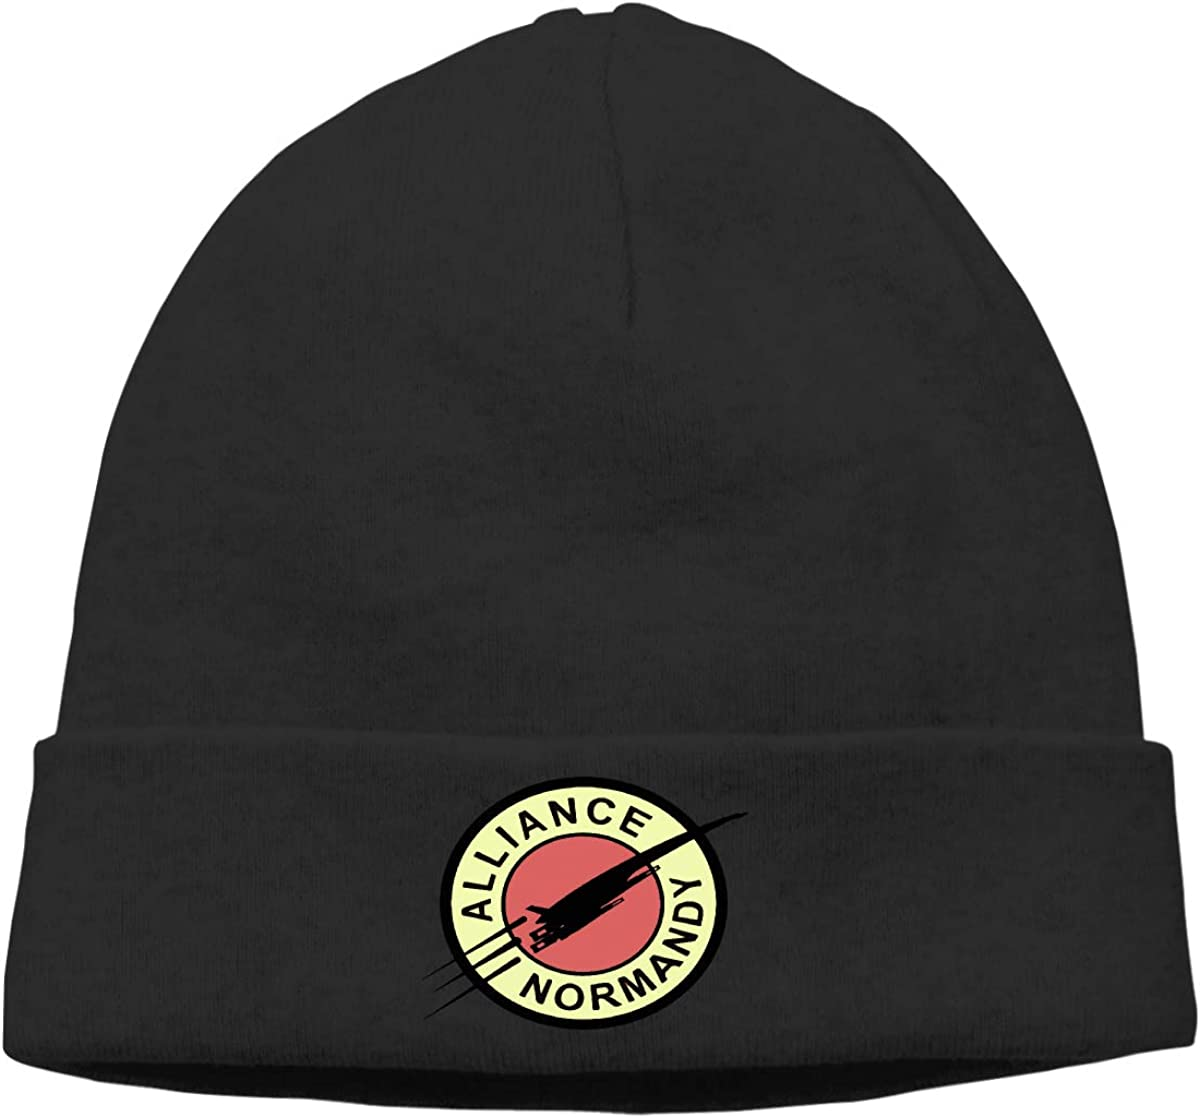 BBlooobow Mens/&Womens Alliance Normandy Soft Knit Hats